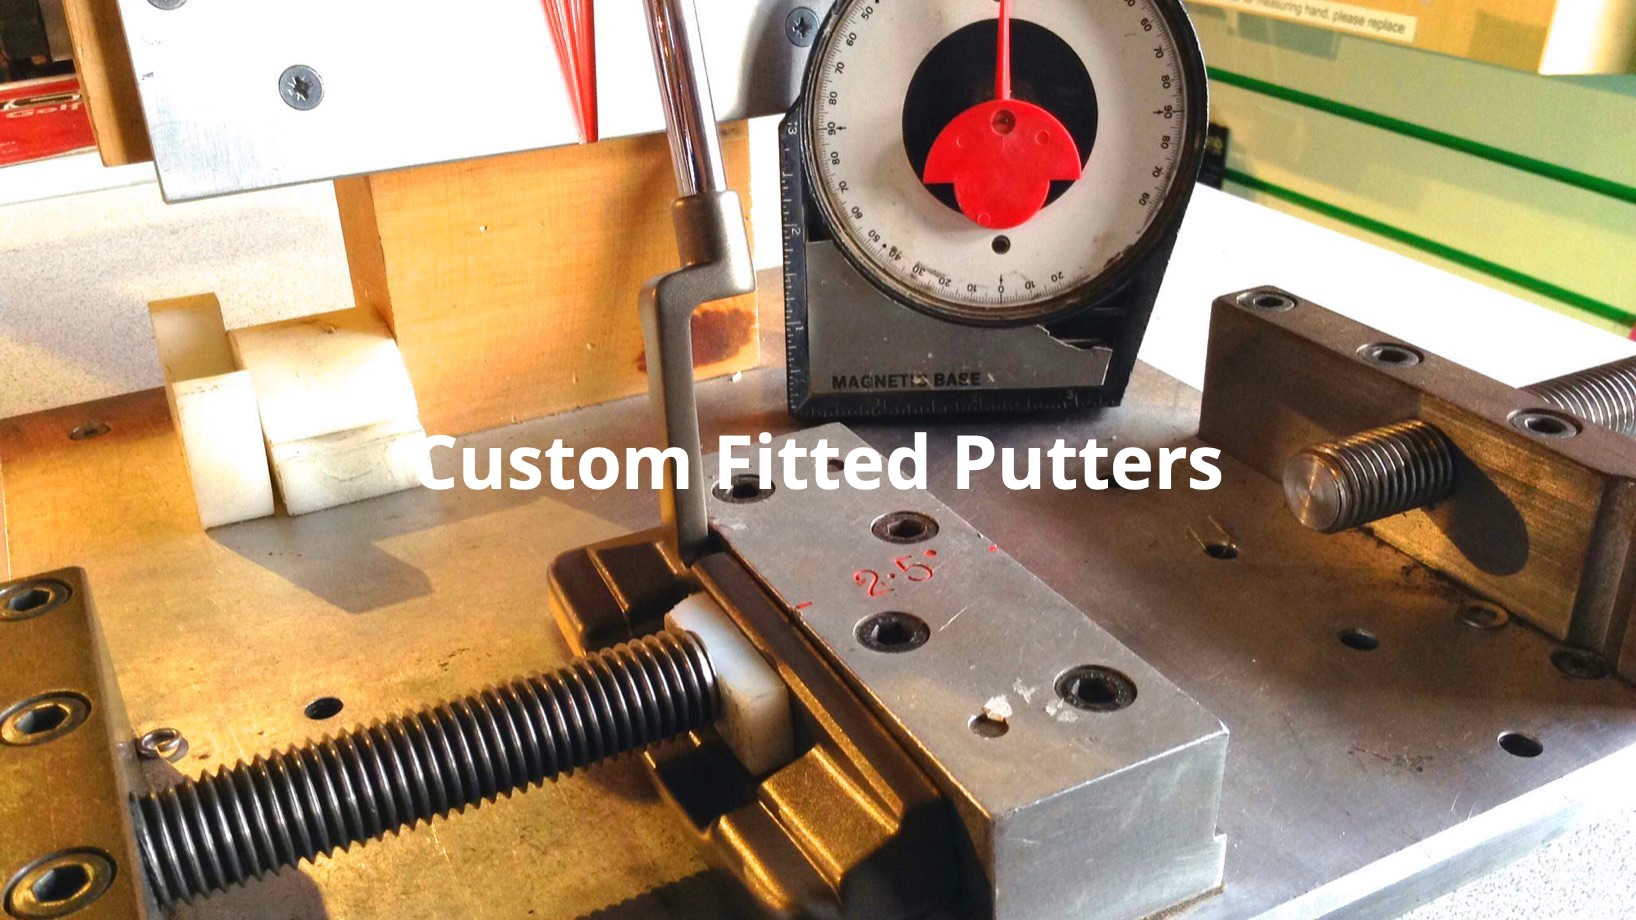 Custom Fitted Putters